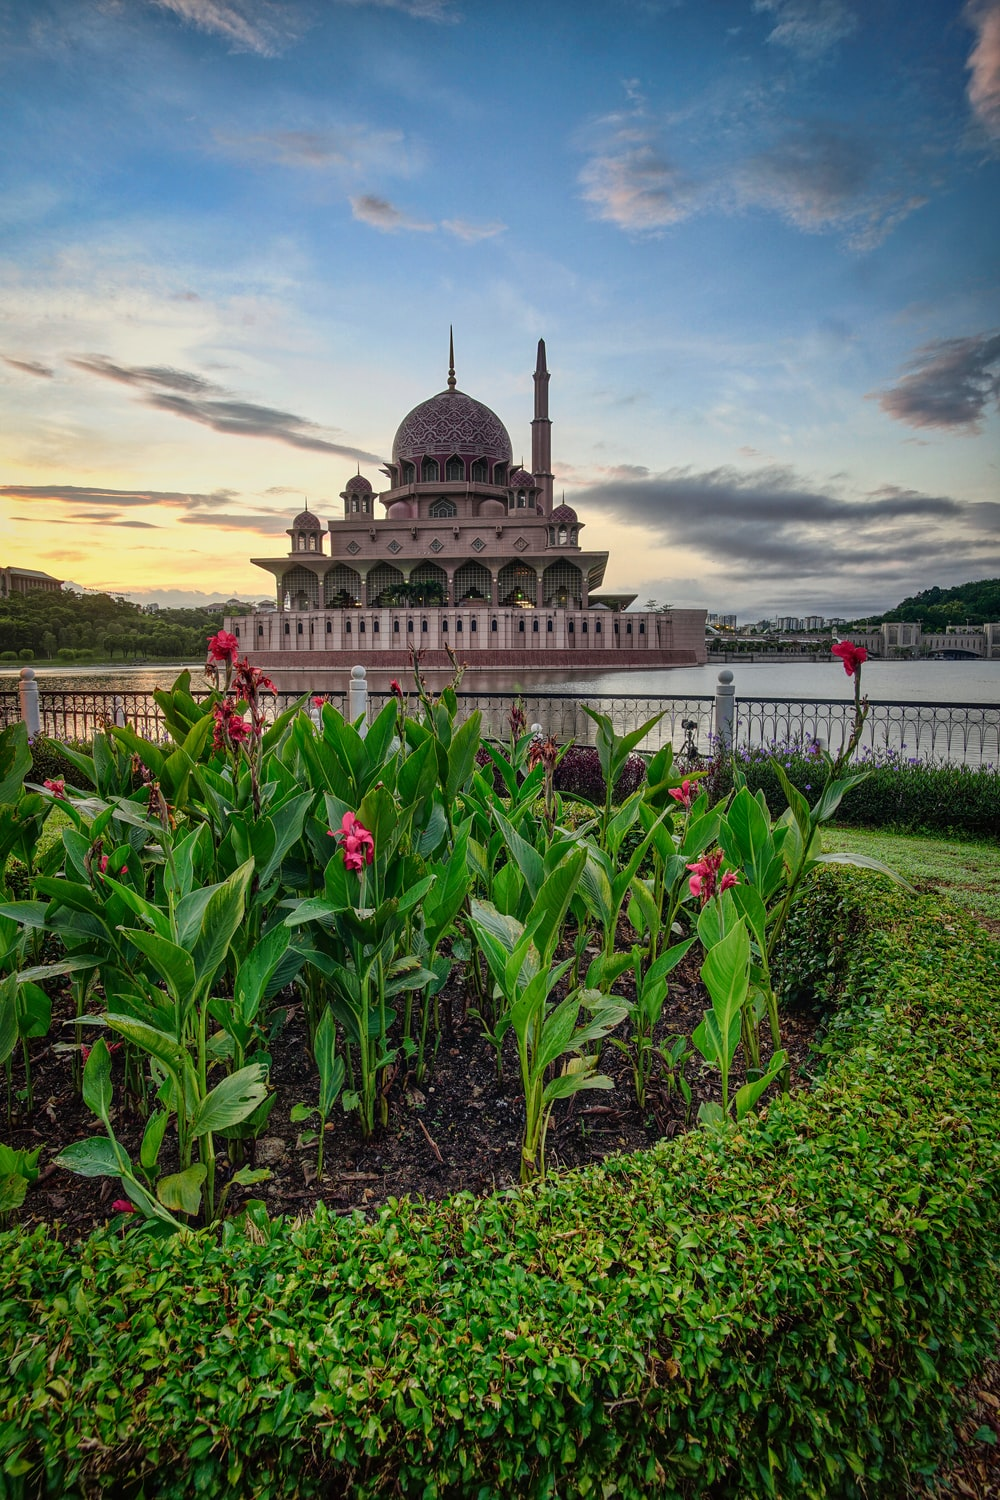 brown dome building viewing pink flower garden under blue and white skies